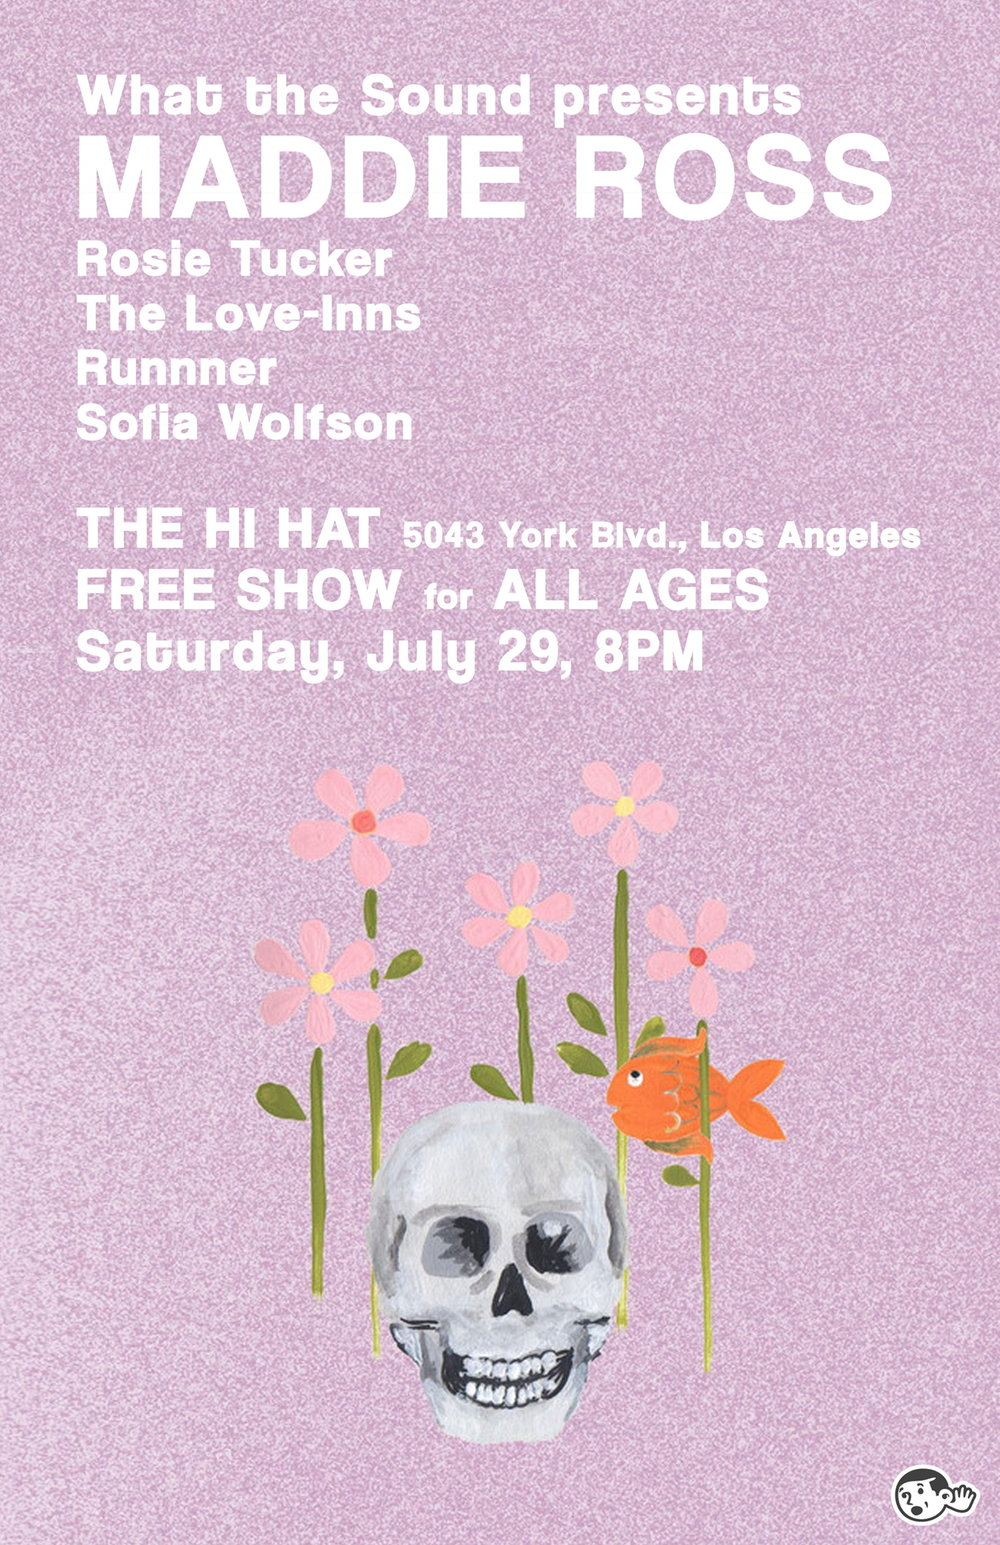 MADDIE ROSS / ROSIE TUCKER / THE LOVE-INNS / RUNNNER / SOFIA WOLFSON - Artwork by Ben Redder July 29 @ The Hi HatFREE & ALL AGES